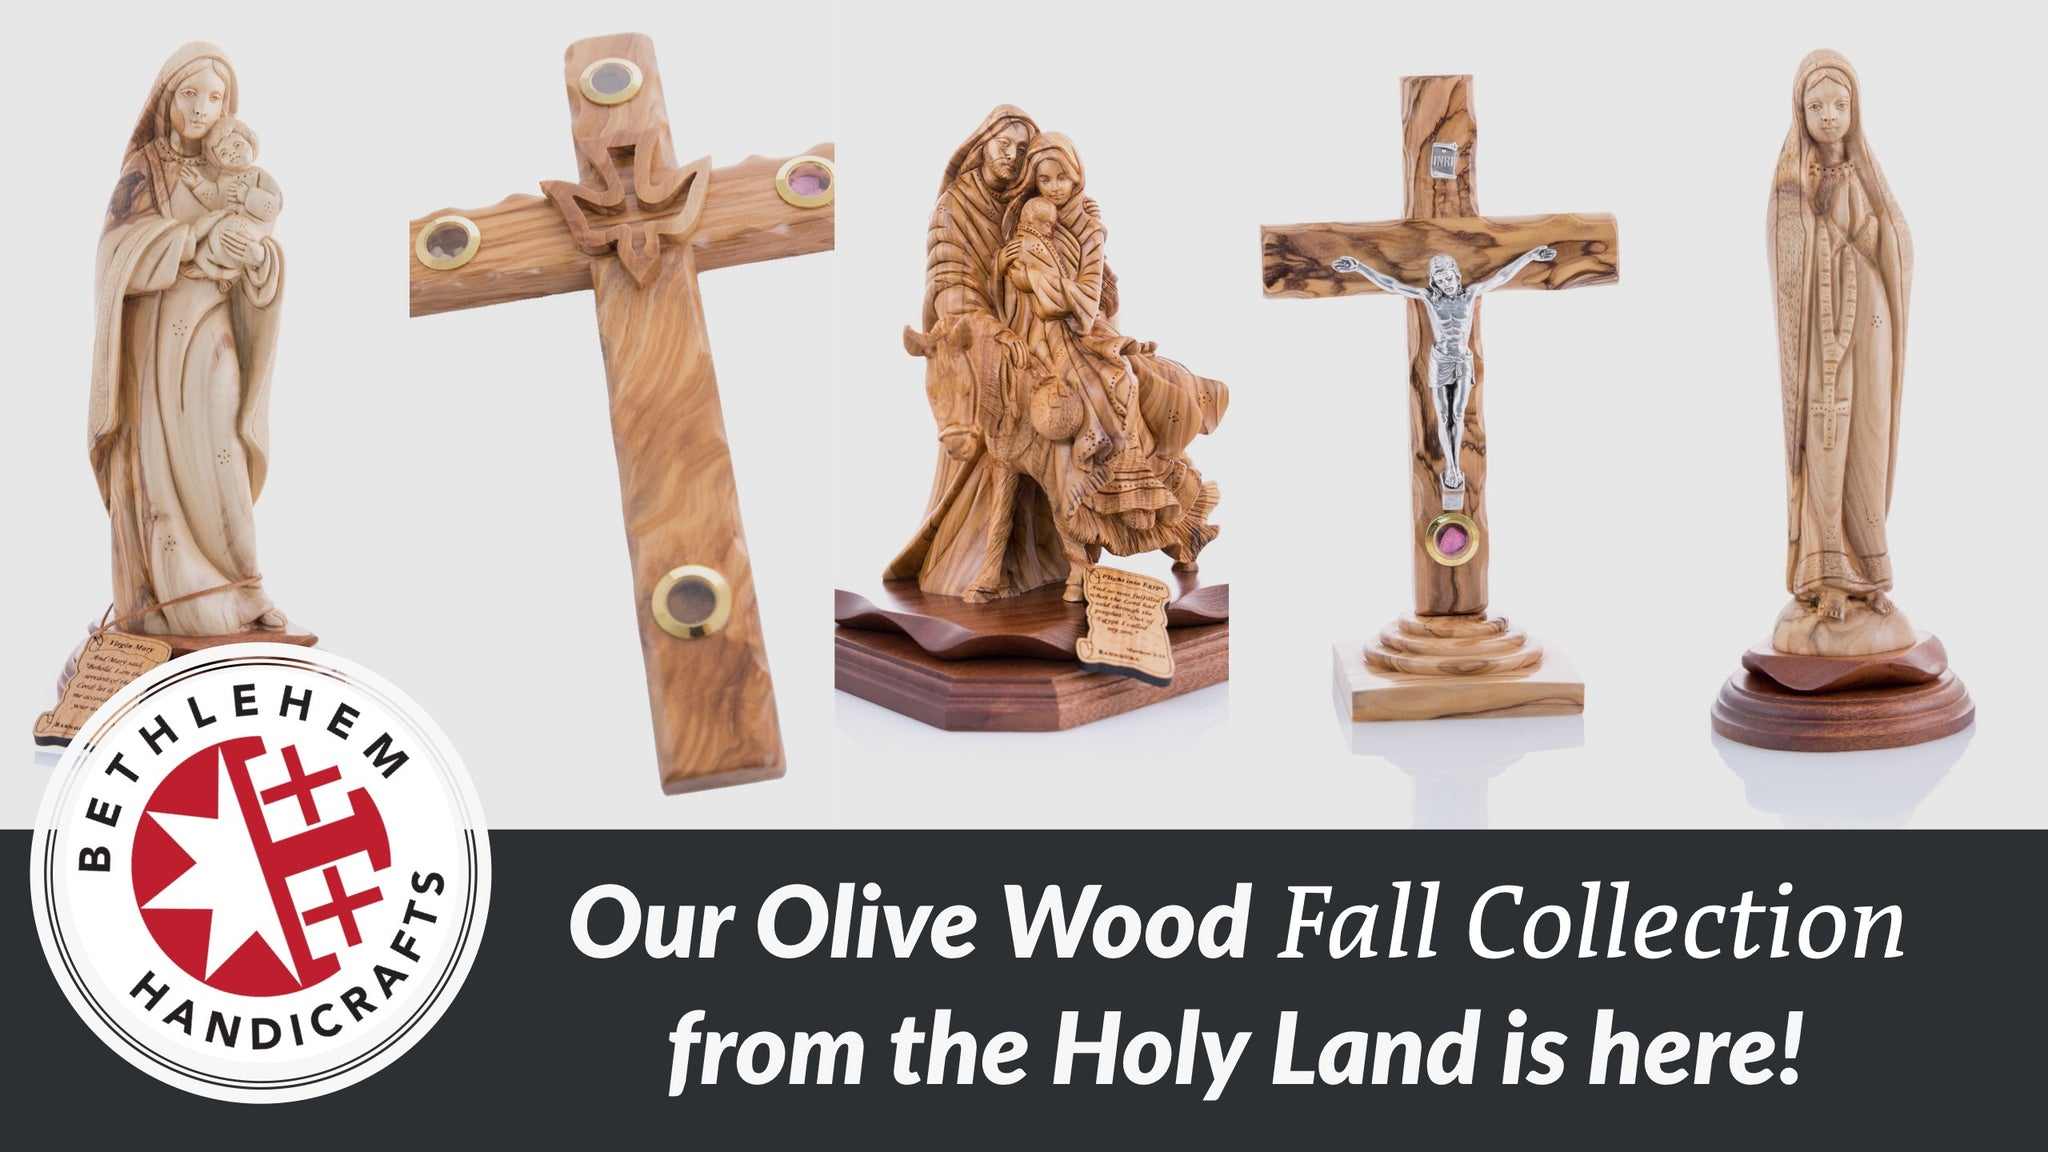 Our Olive Wood Fall Collection from the Holy Land is here!